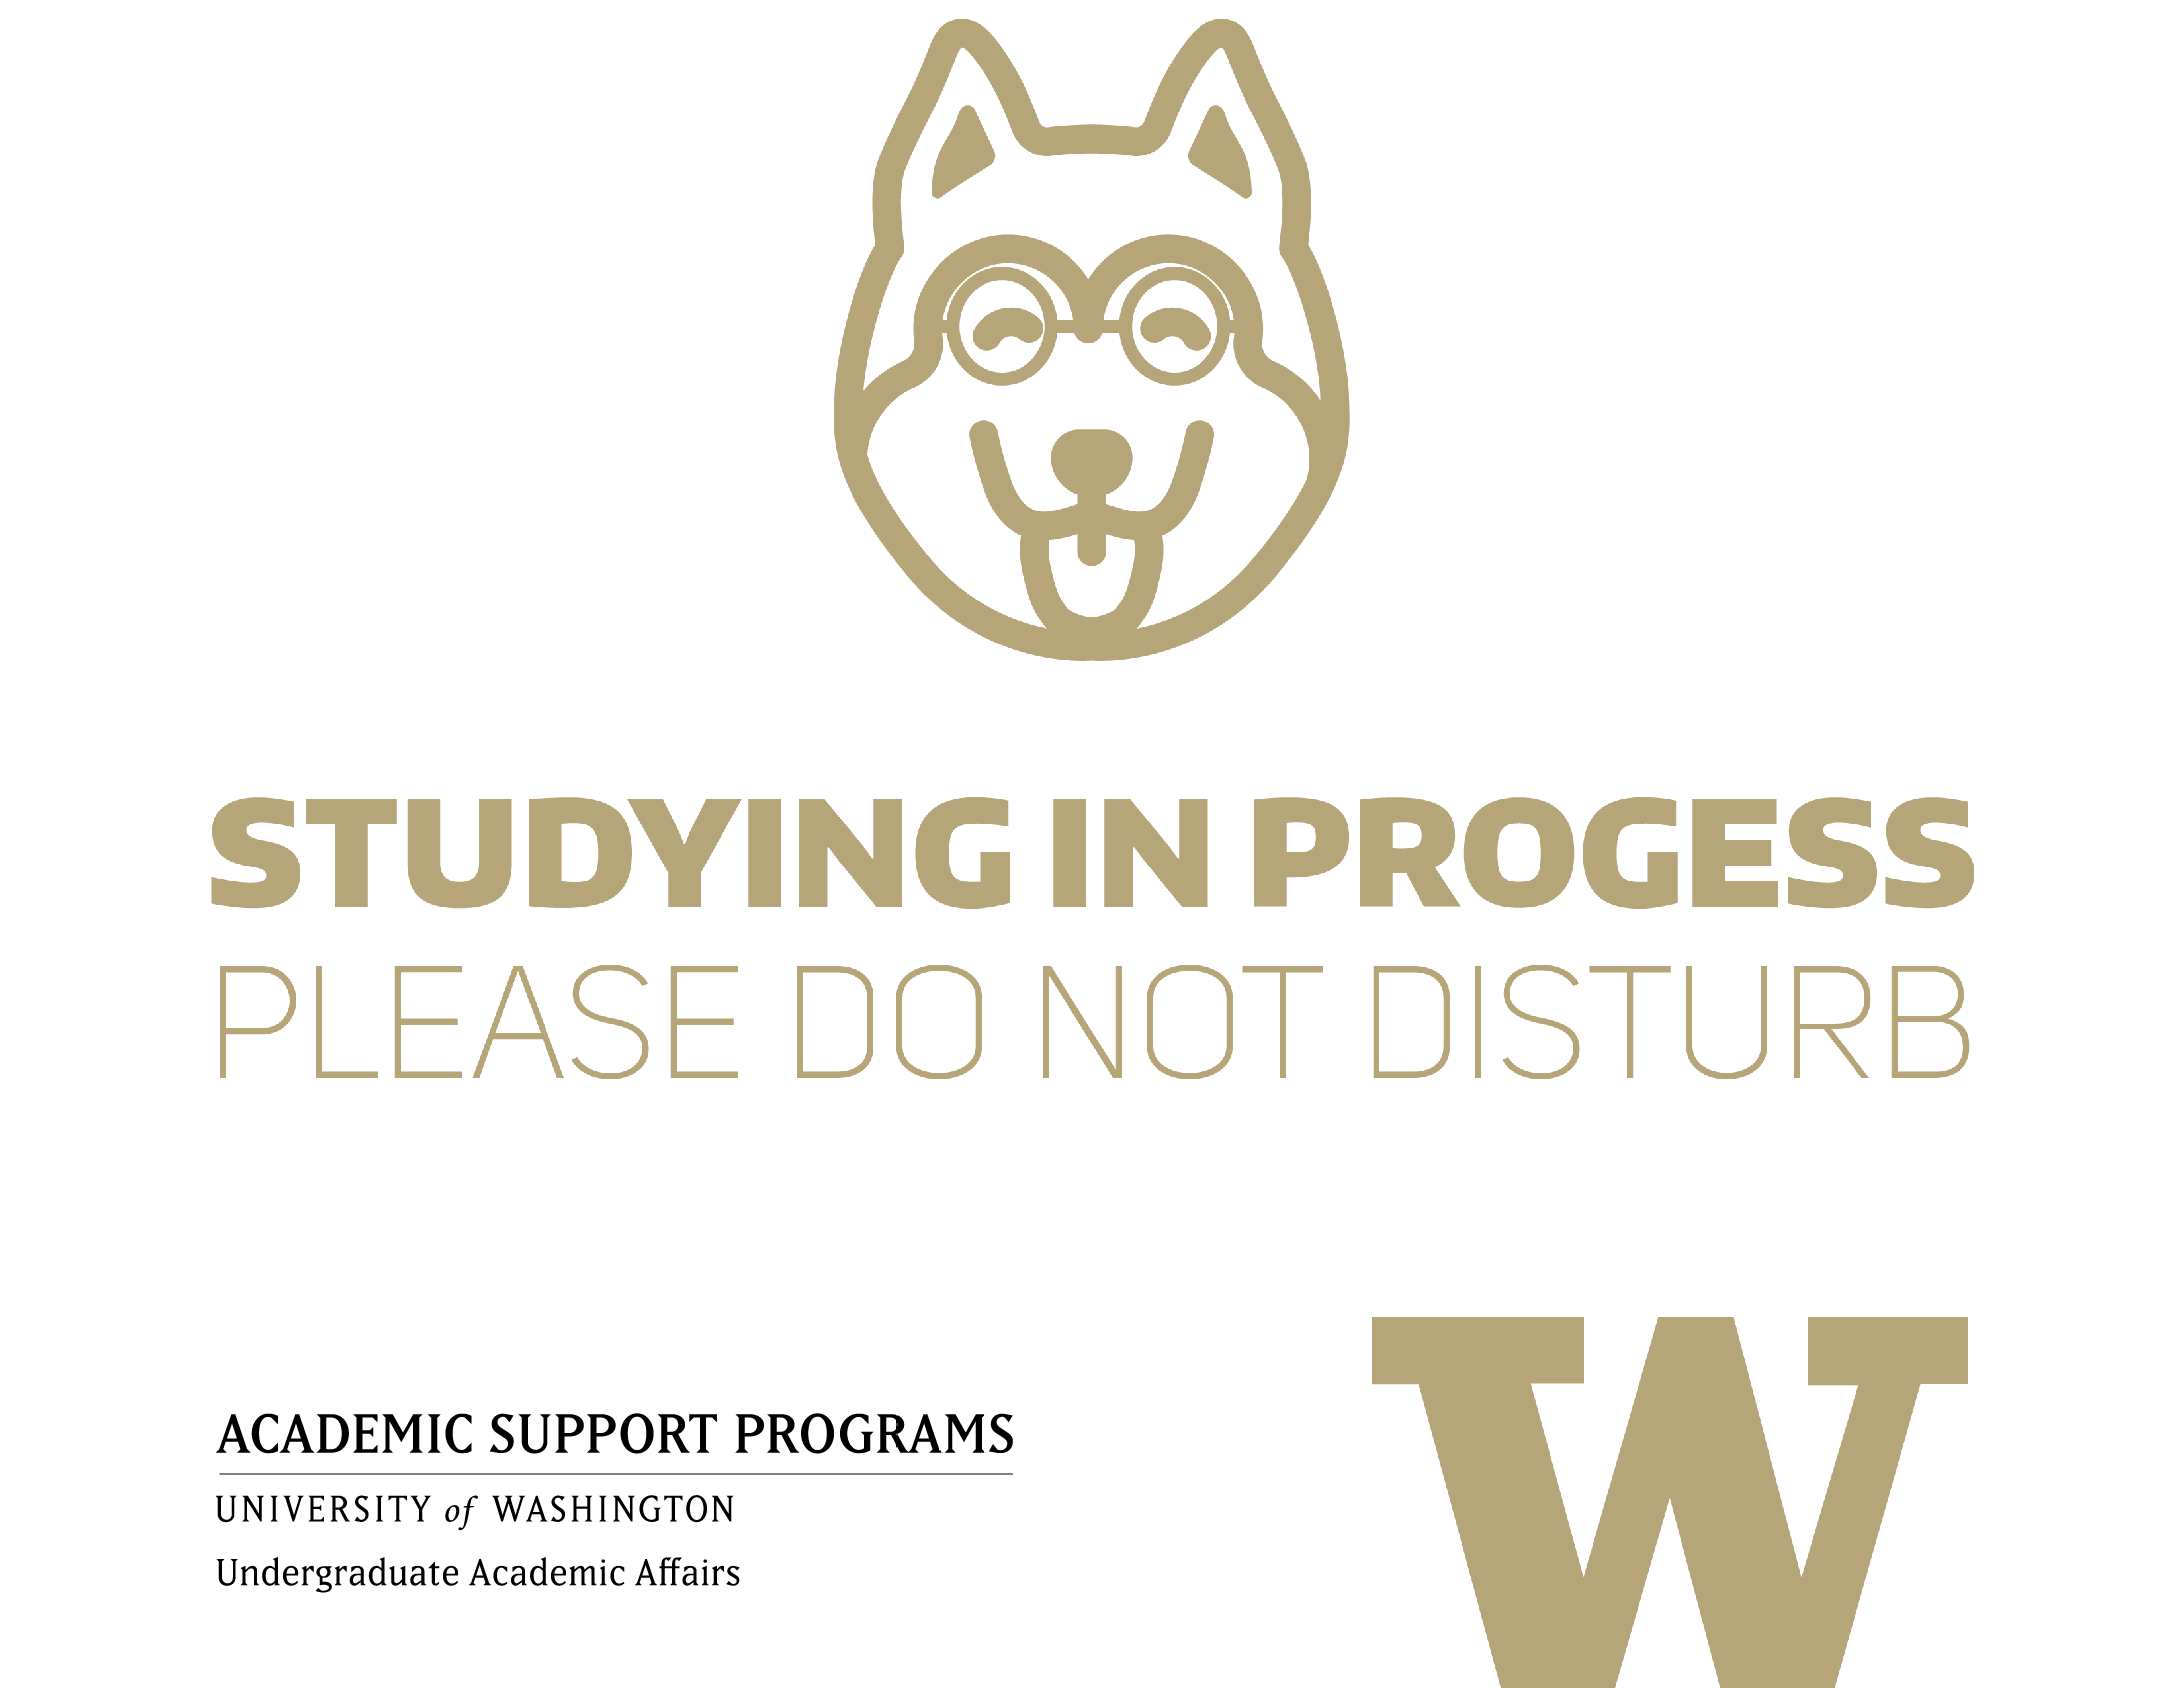 Studying in progress - gold